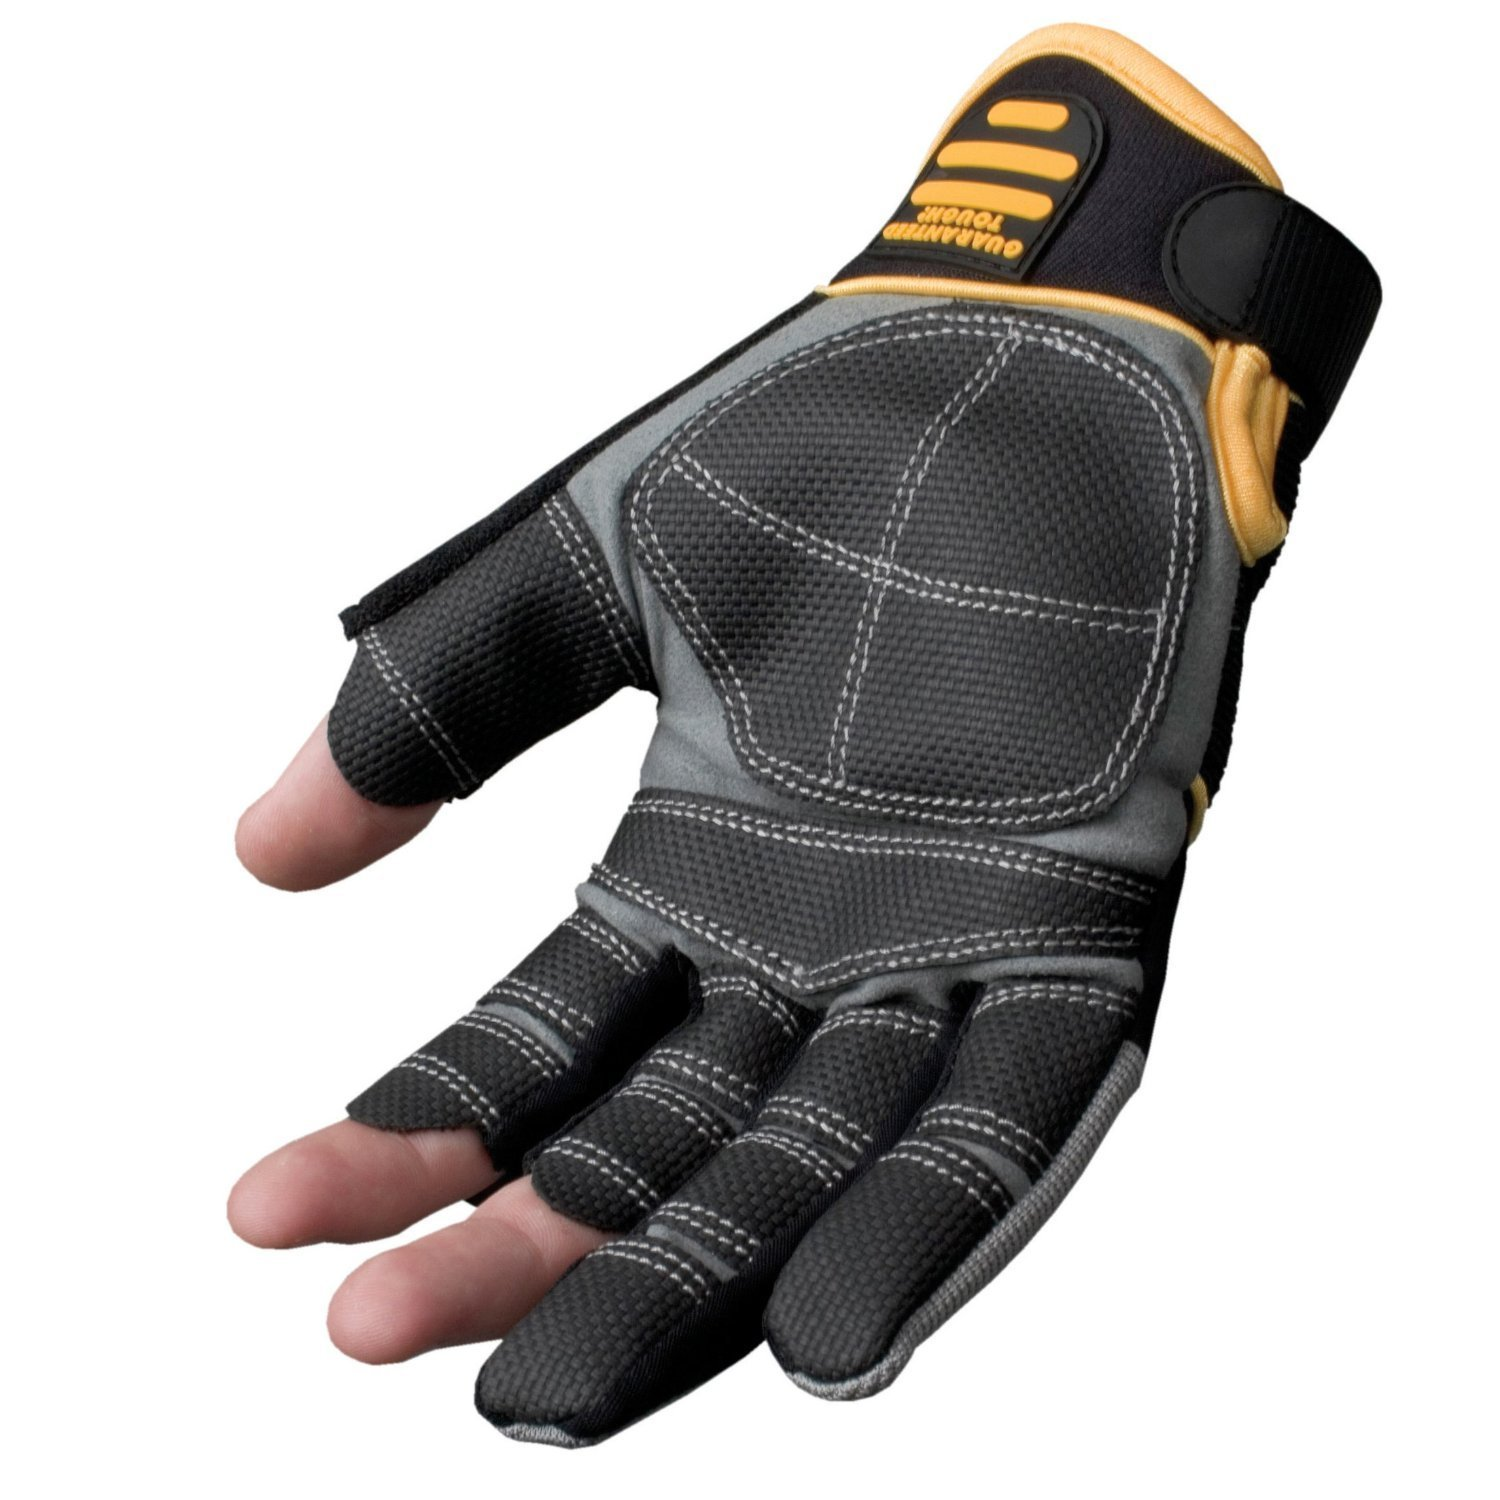 Image result for Best Parkour Gloves